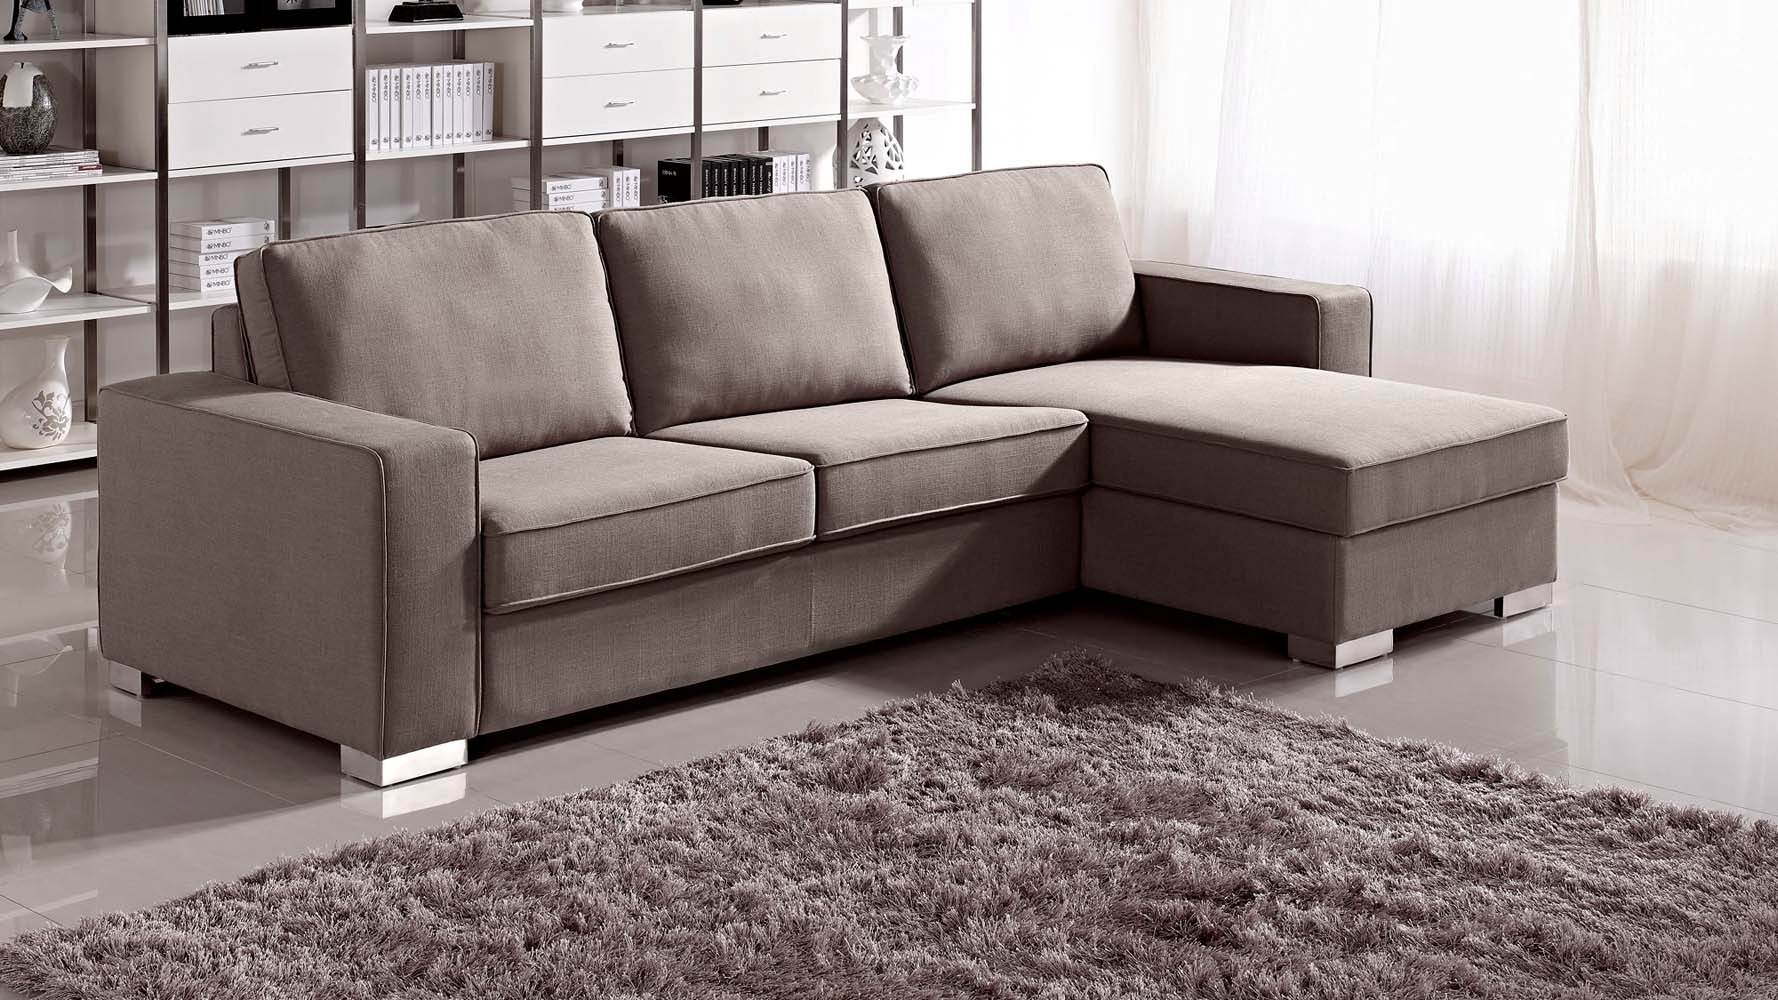 Well Known Pull Out Sofa Bed Sectional Sleeper Sofa Costco Walmart Pull Out In Sleeper Sofas With Storage Chaise (View 2 of 15)